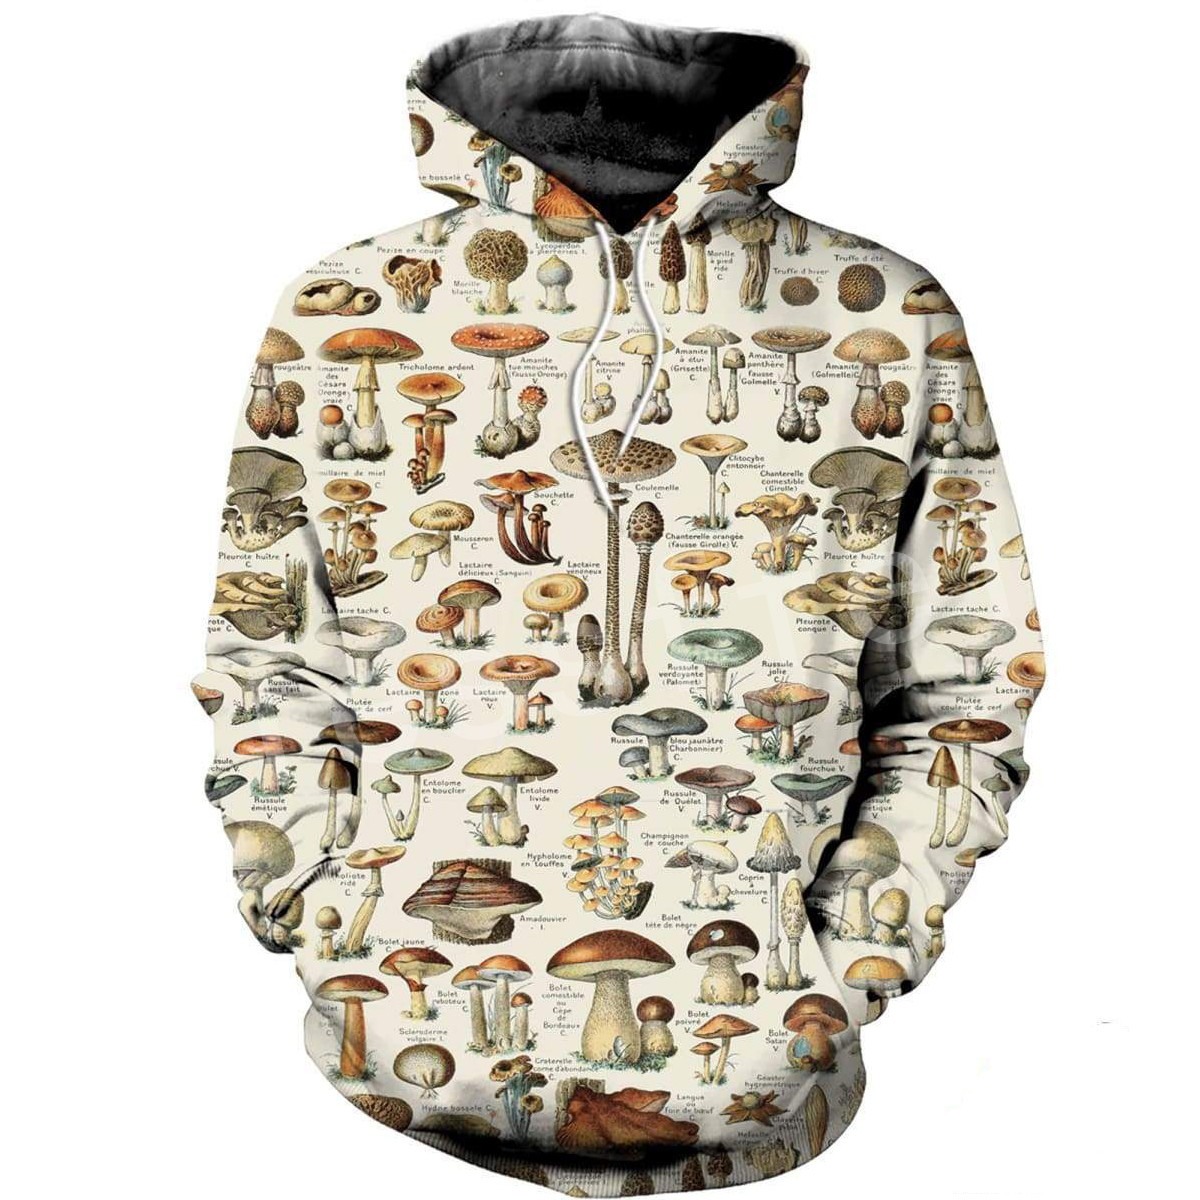 Tessffel Mushroom Colorful Tracksuit Unisex 3DPrint Hoodie/Sweatshirt/Jacket/Mens Womens HIP HOP Cartoon Casual Style-9